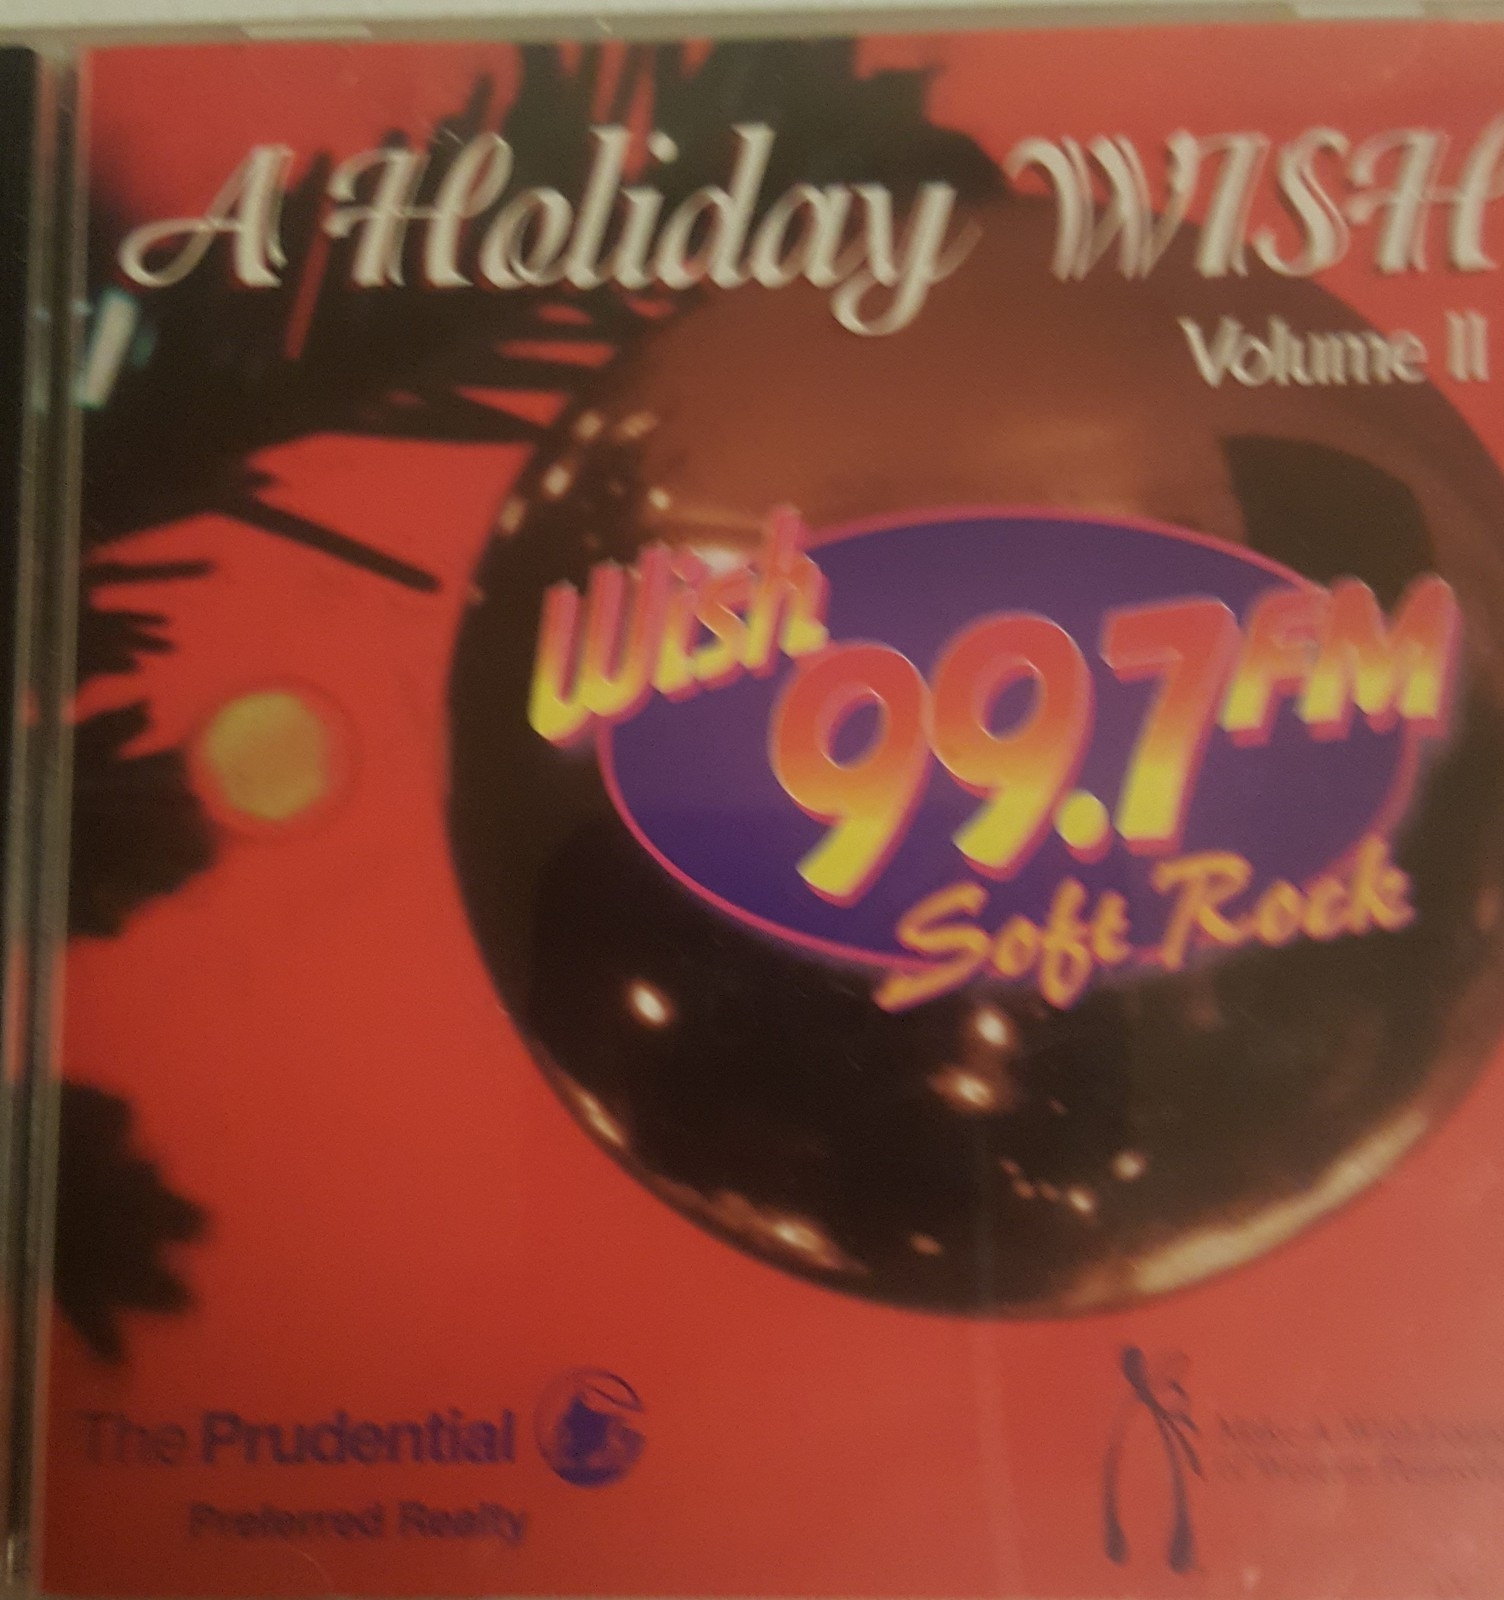 A Holiday Wish Volume II Cd